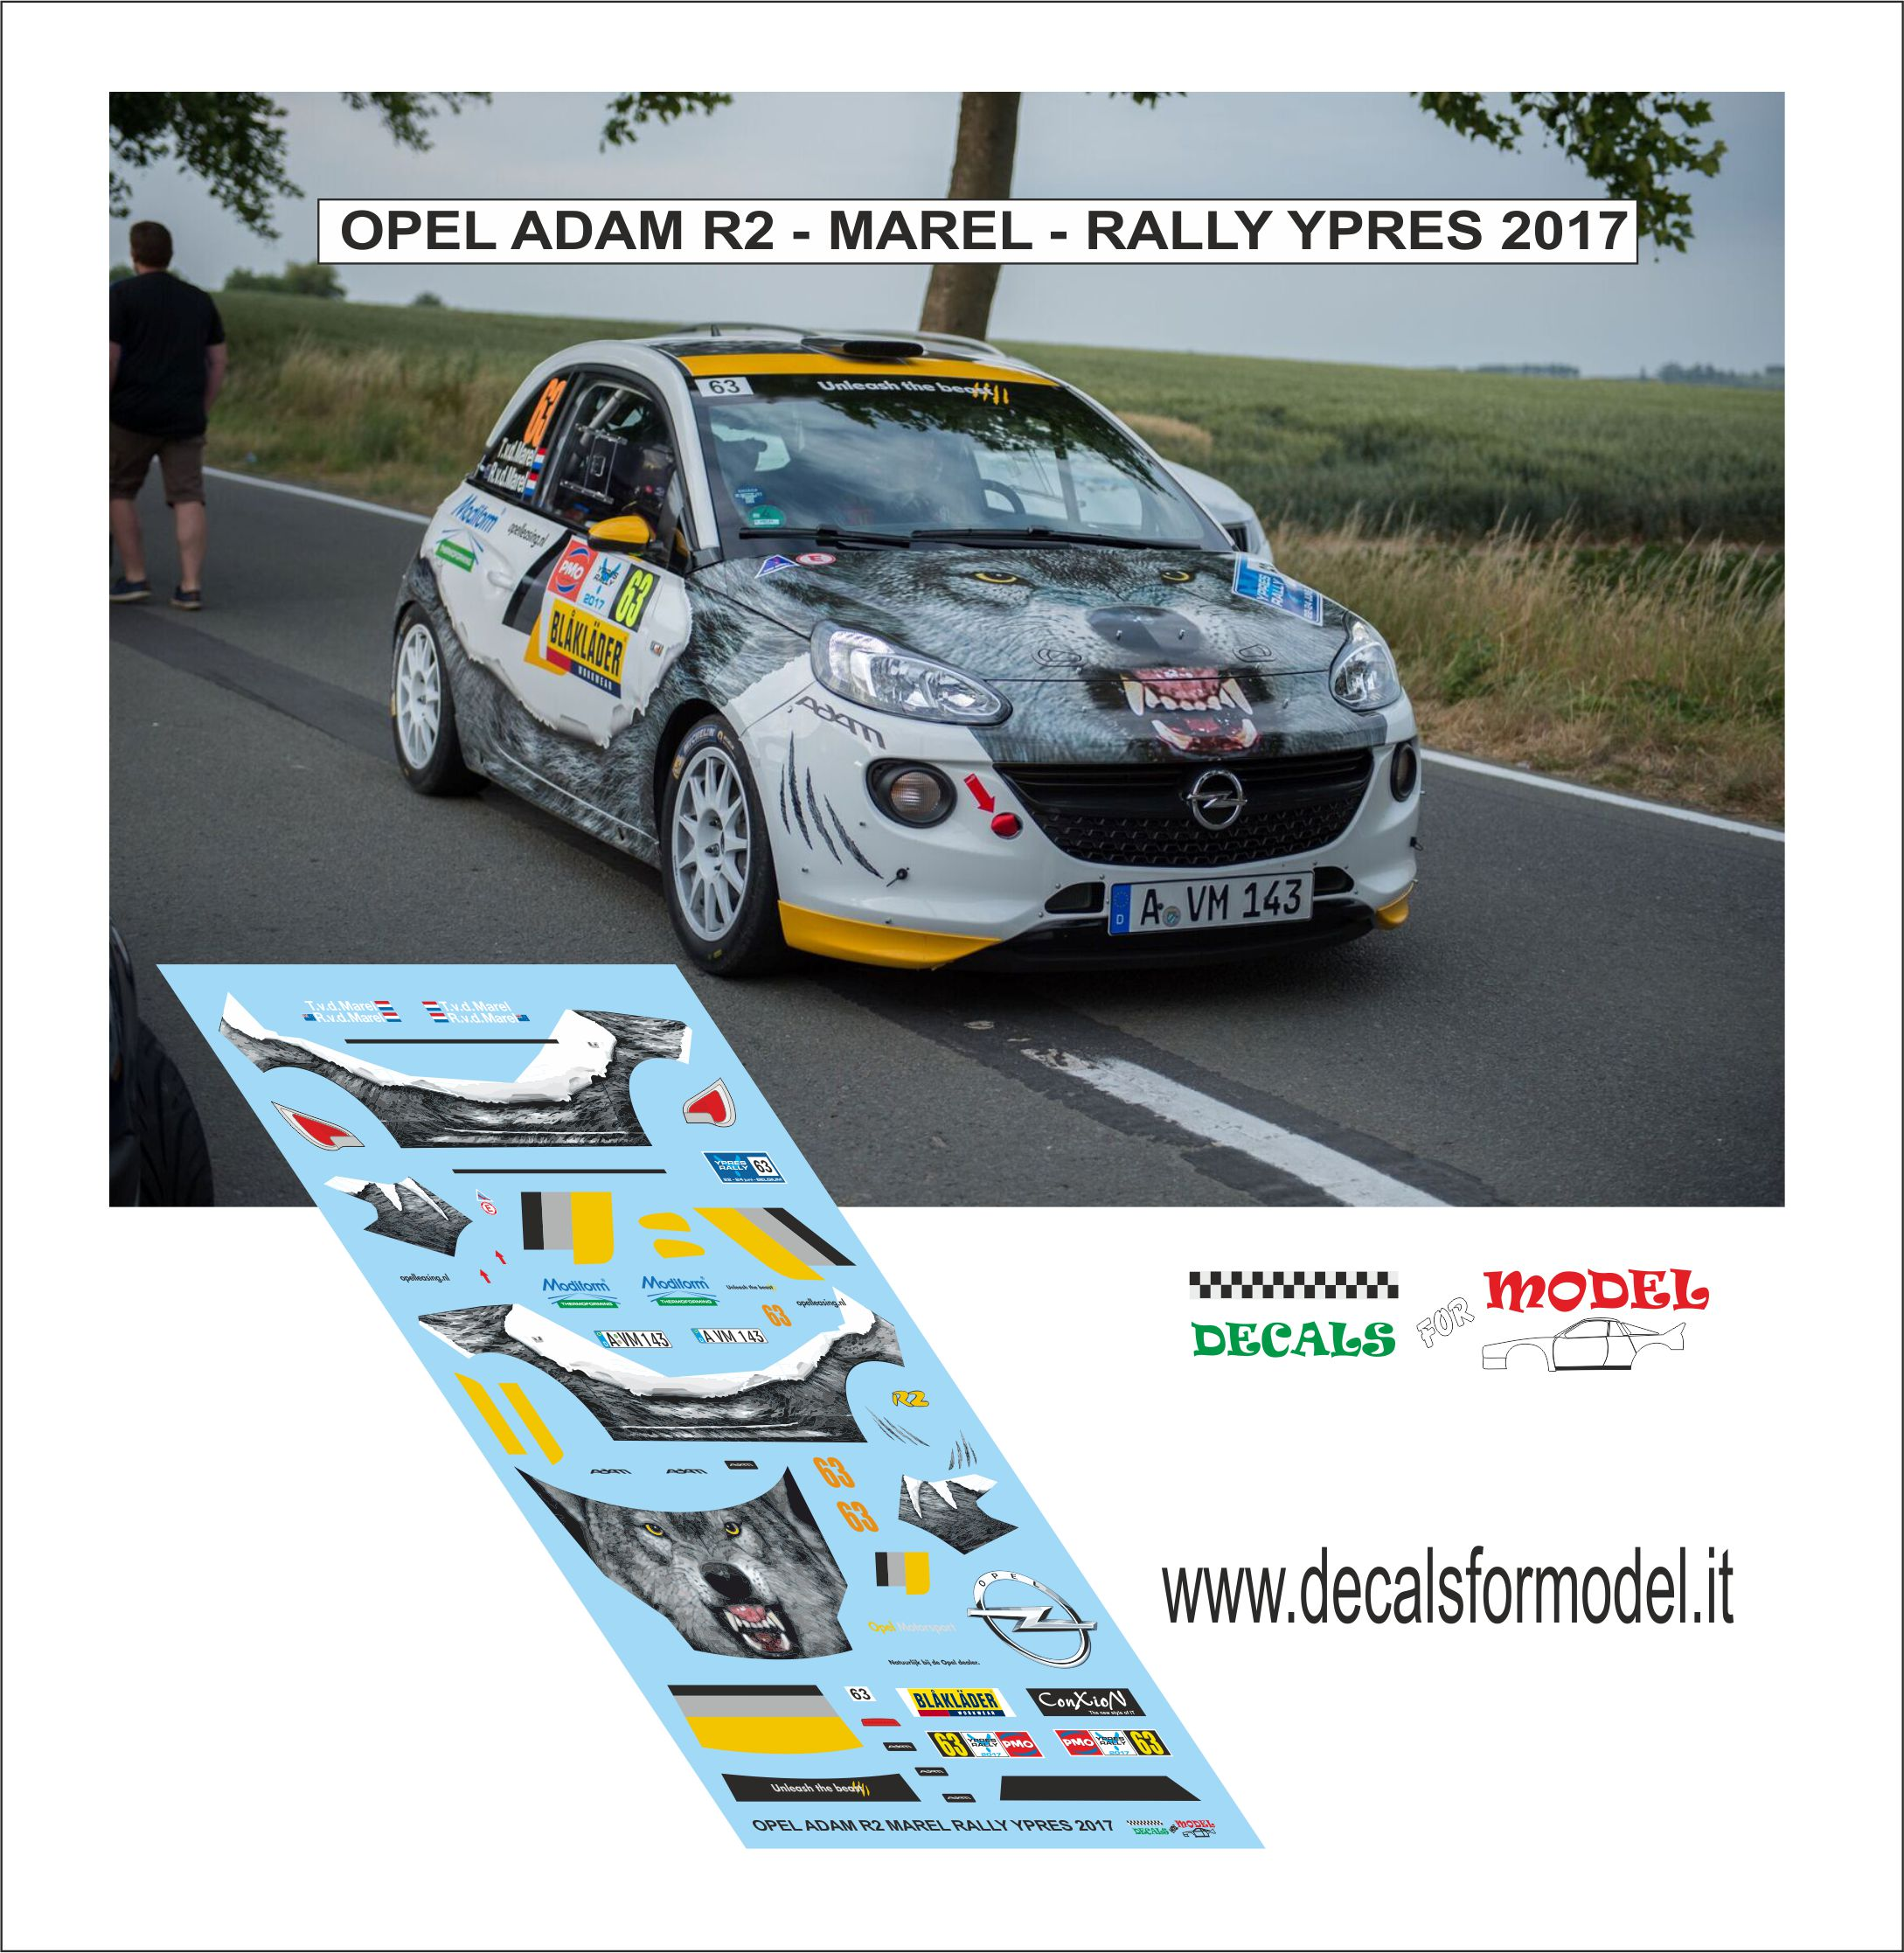 DECAL OPEL ADAM R2 - MAREL - RALLY YPRES 2017